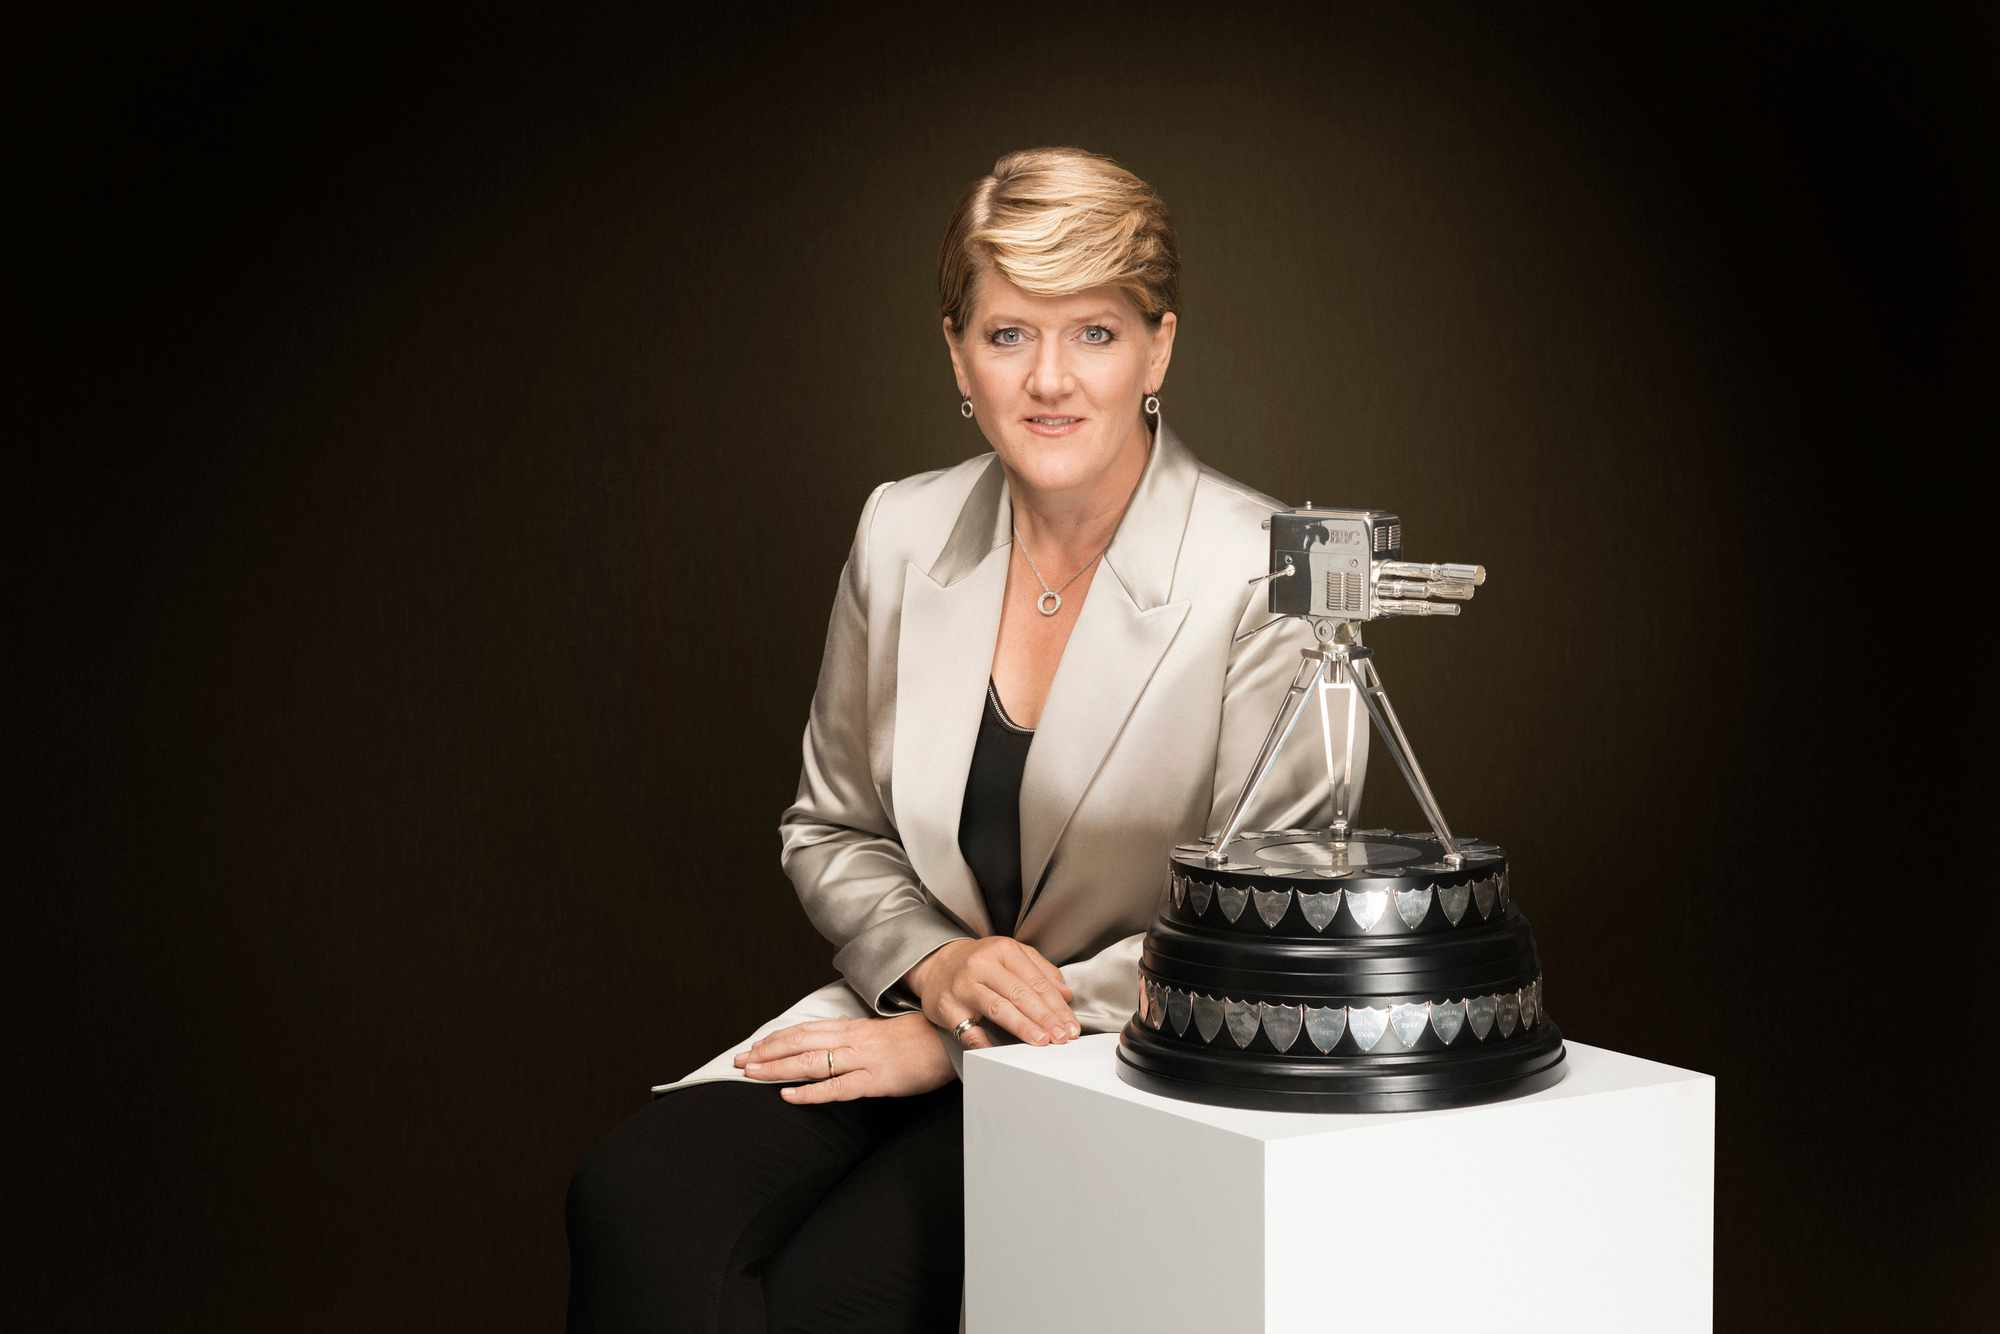 Clare Balding with the famous BBC Sports Personality of the Year trophy (BBC)